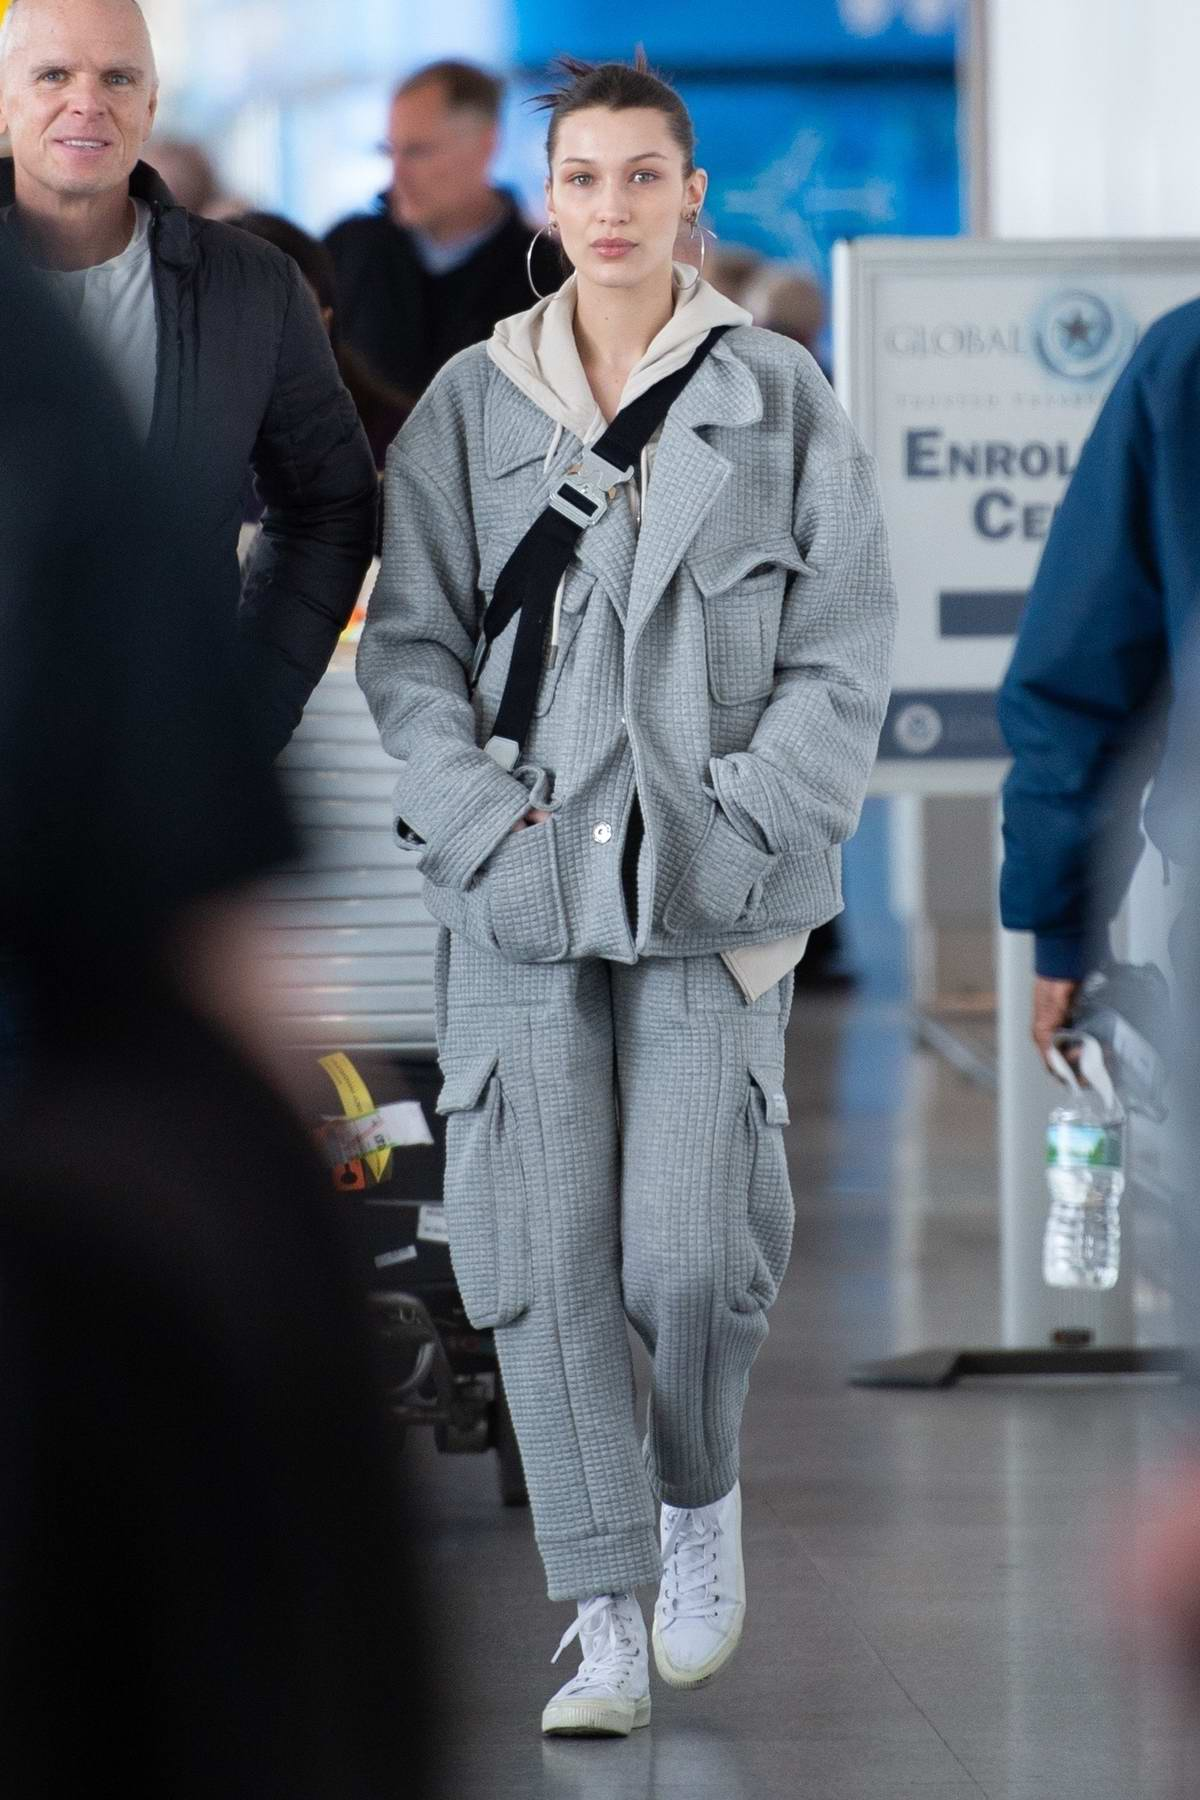 Bella Hadid sports a trendy look as she arrives at JFK airport in New York City